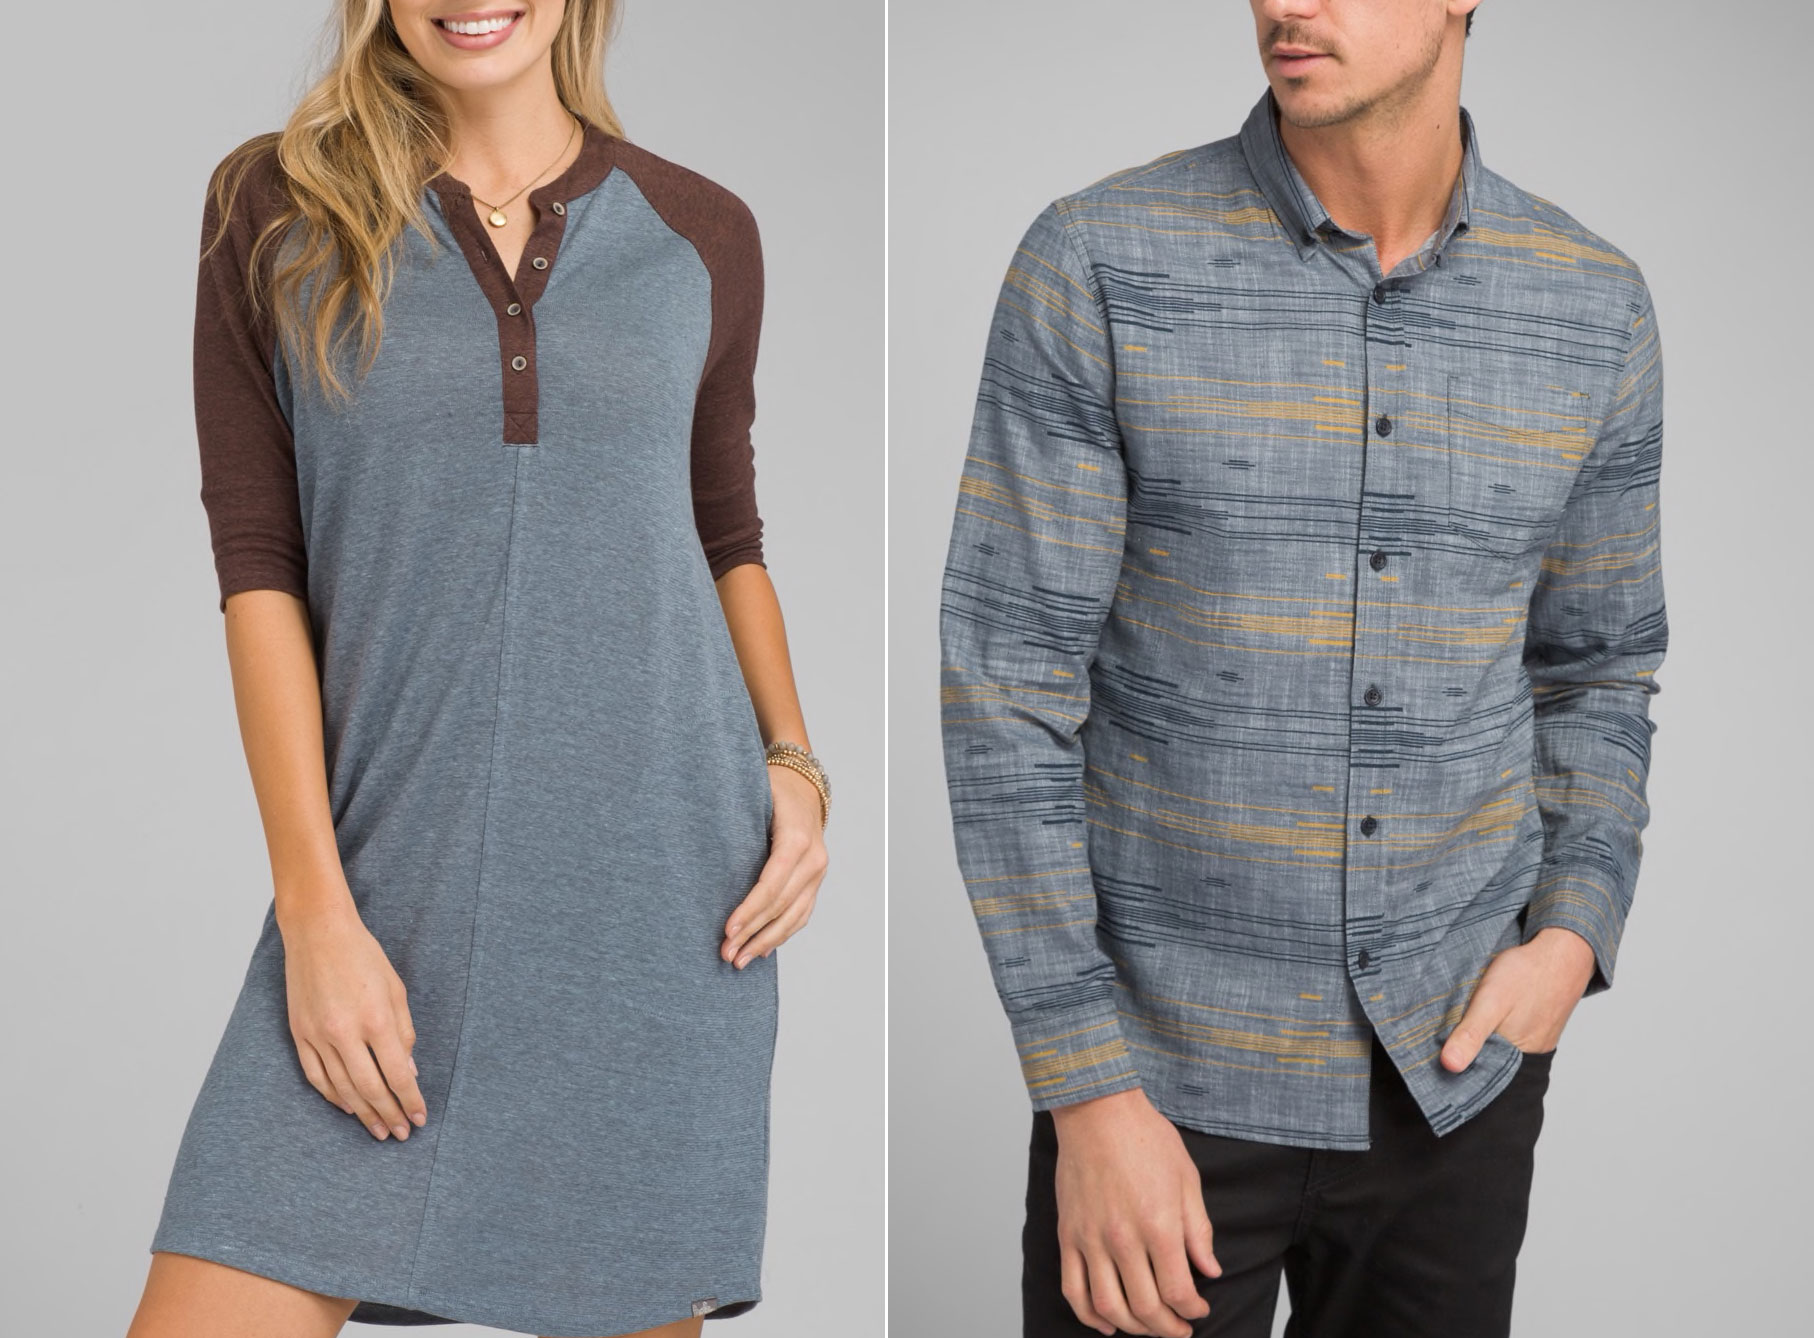 Celebrate Fair Trade Month With Awesome Fall Gear (on Sale!)